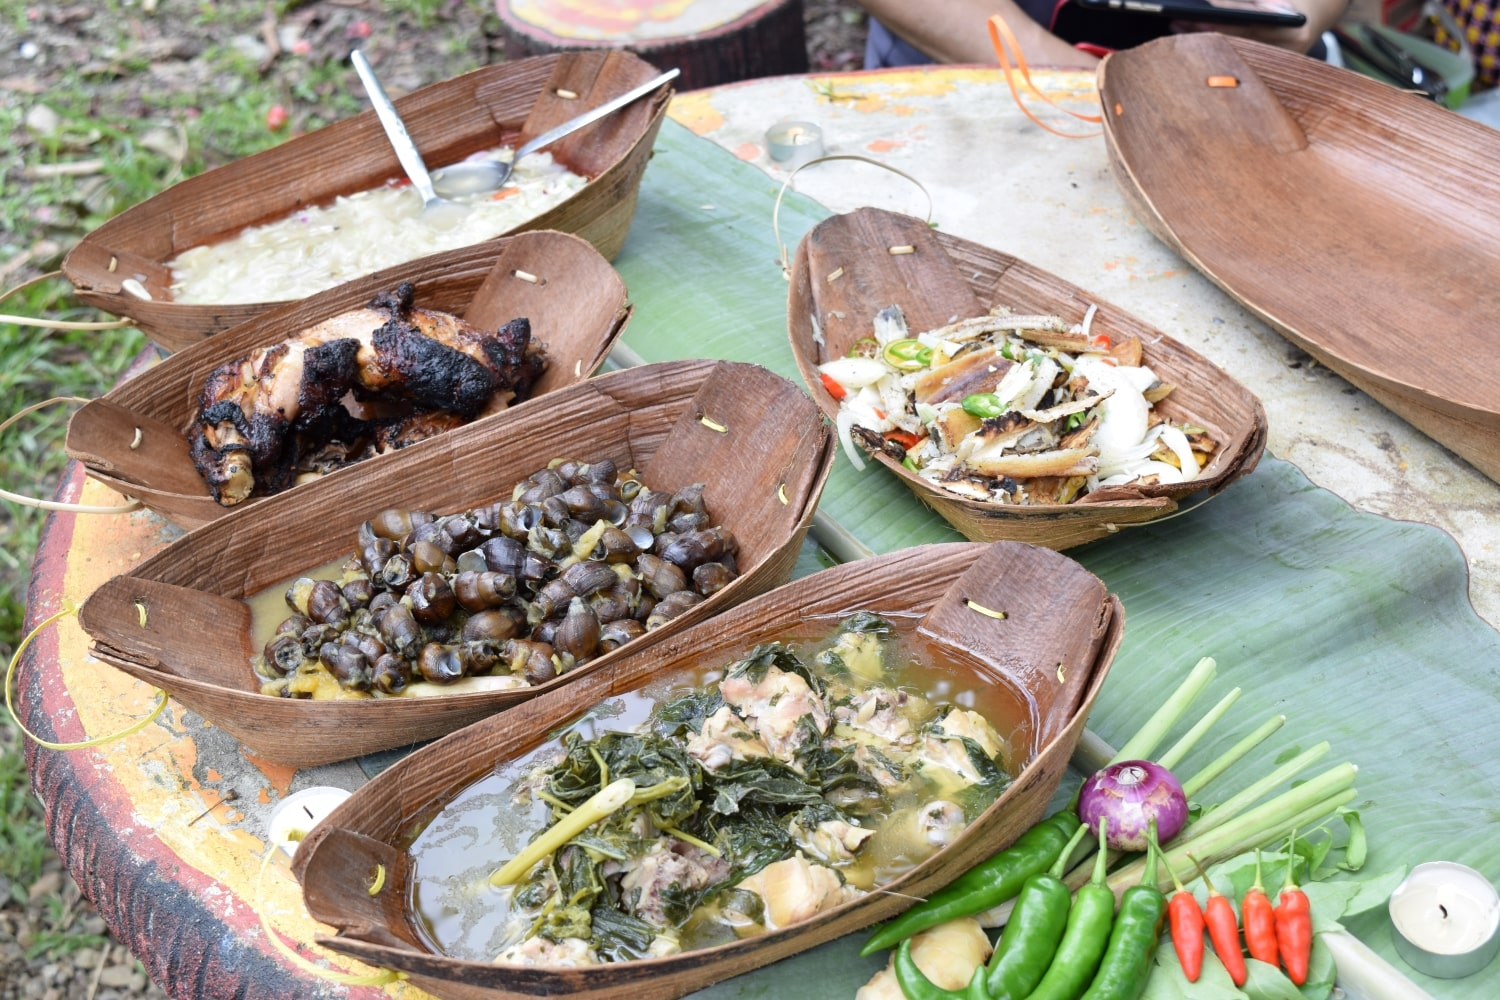 Tribal food cooked and served for lunch with Backyard Tour Malaysia